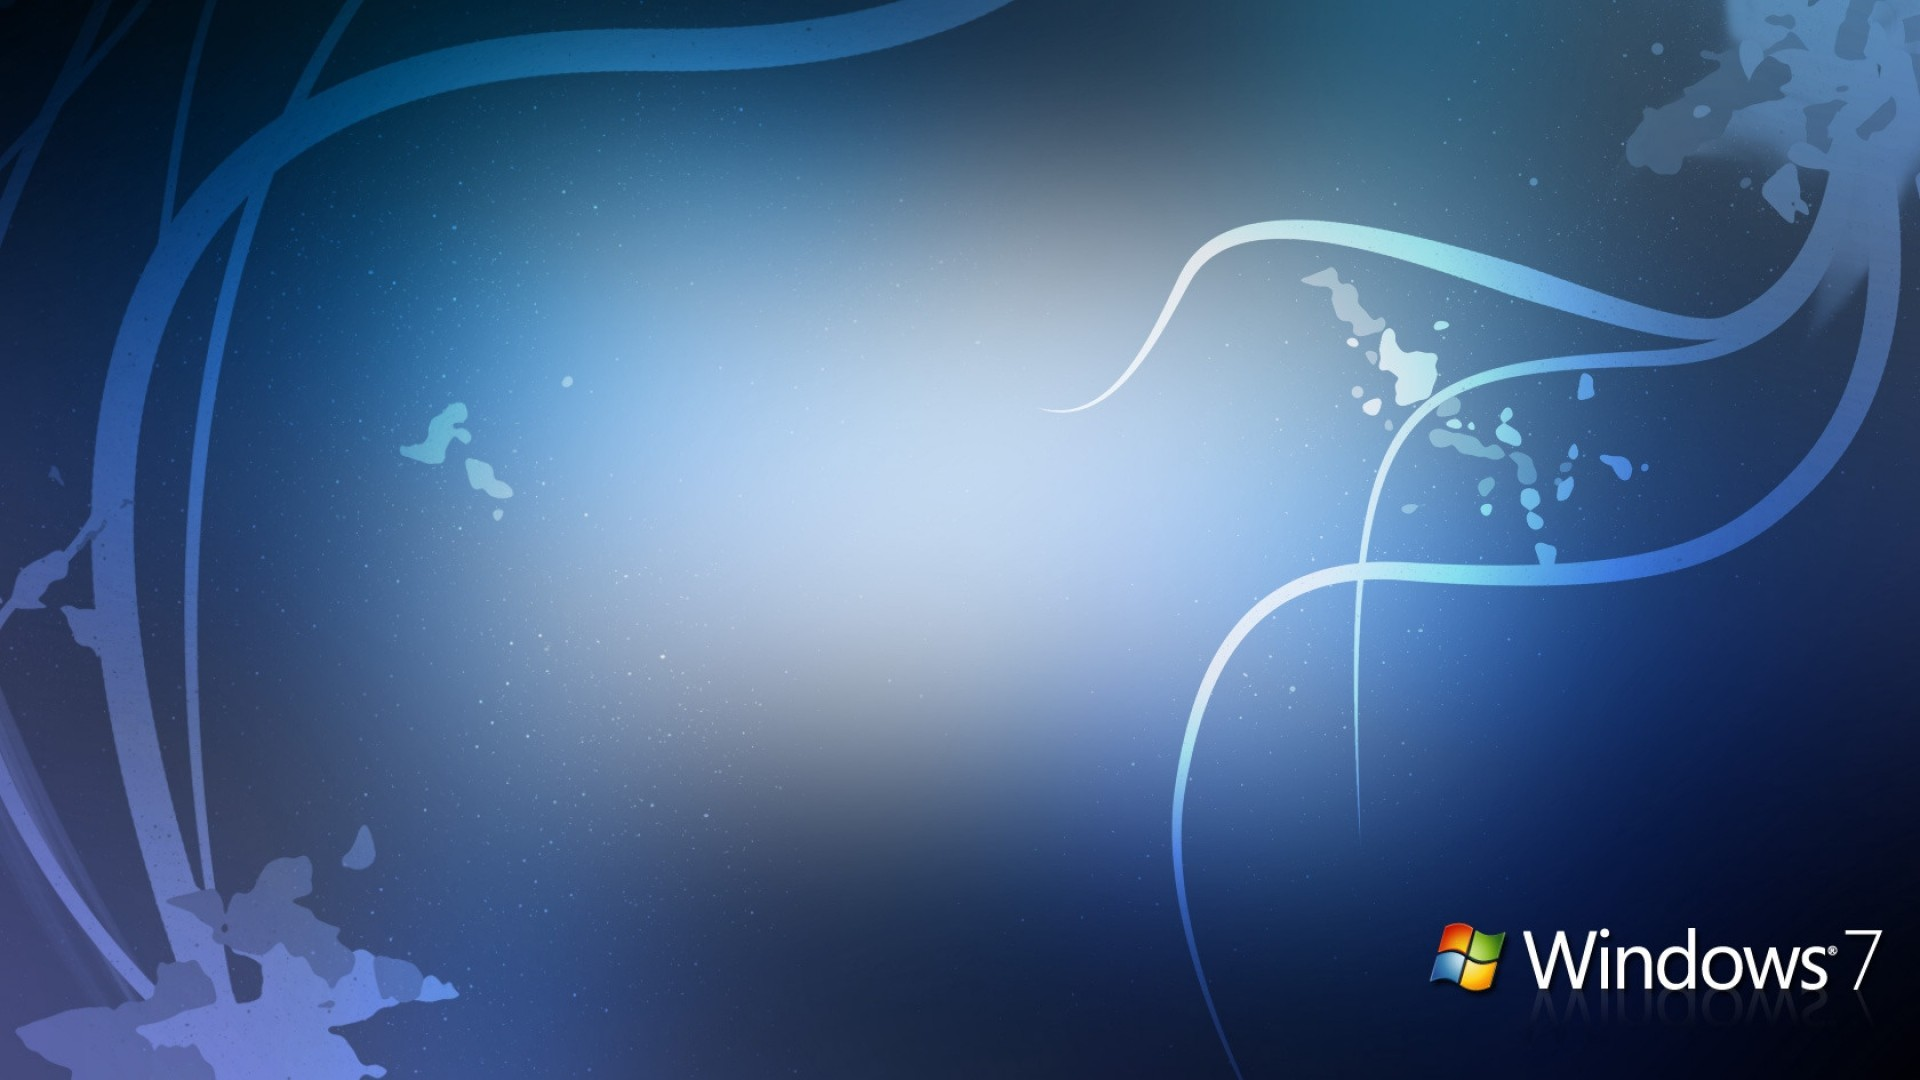 Screensavers And Wallpaper For Windows 7 55 Images